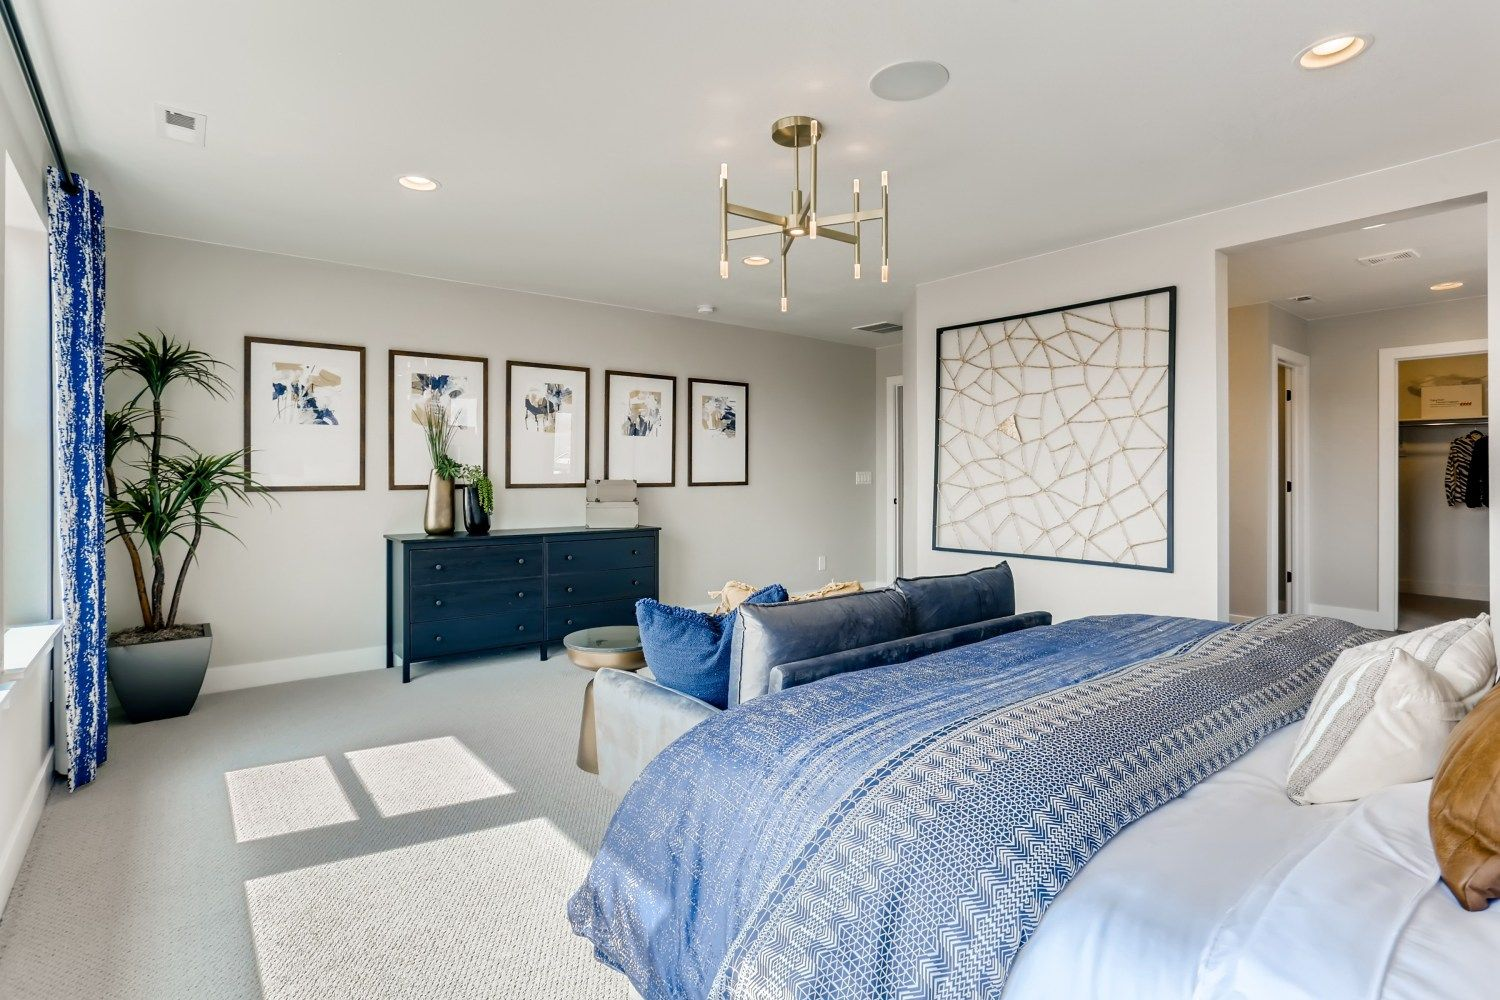 Bedroom featured in The Telluride Sterling 35s By Taylor Morrison in Denver, CO